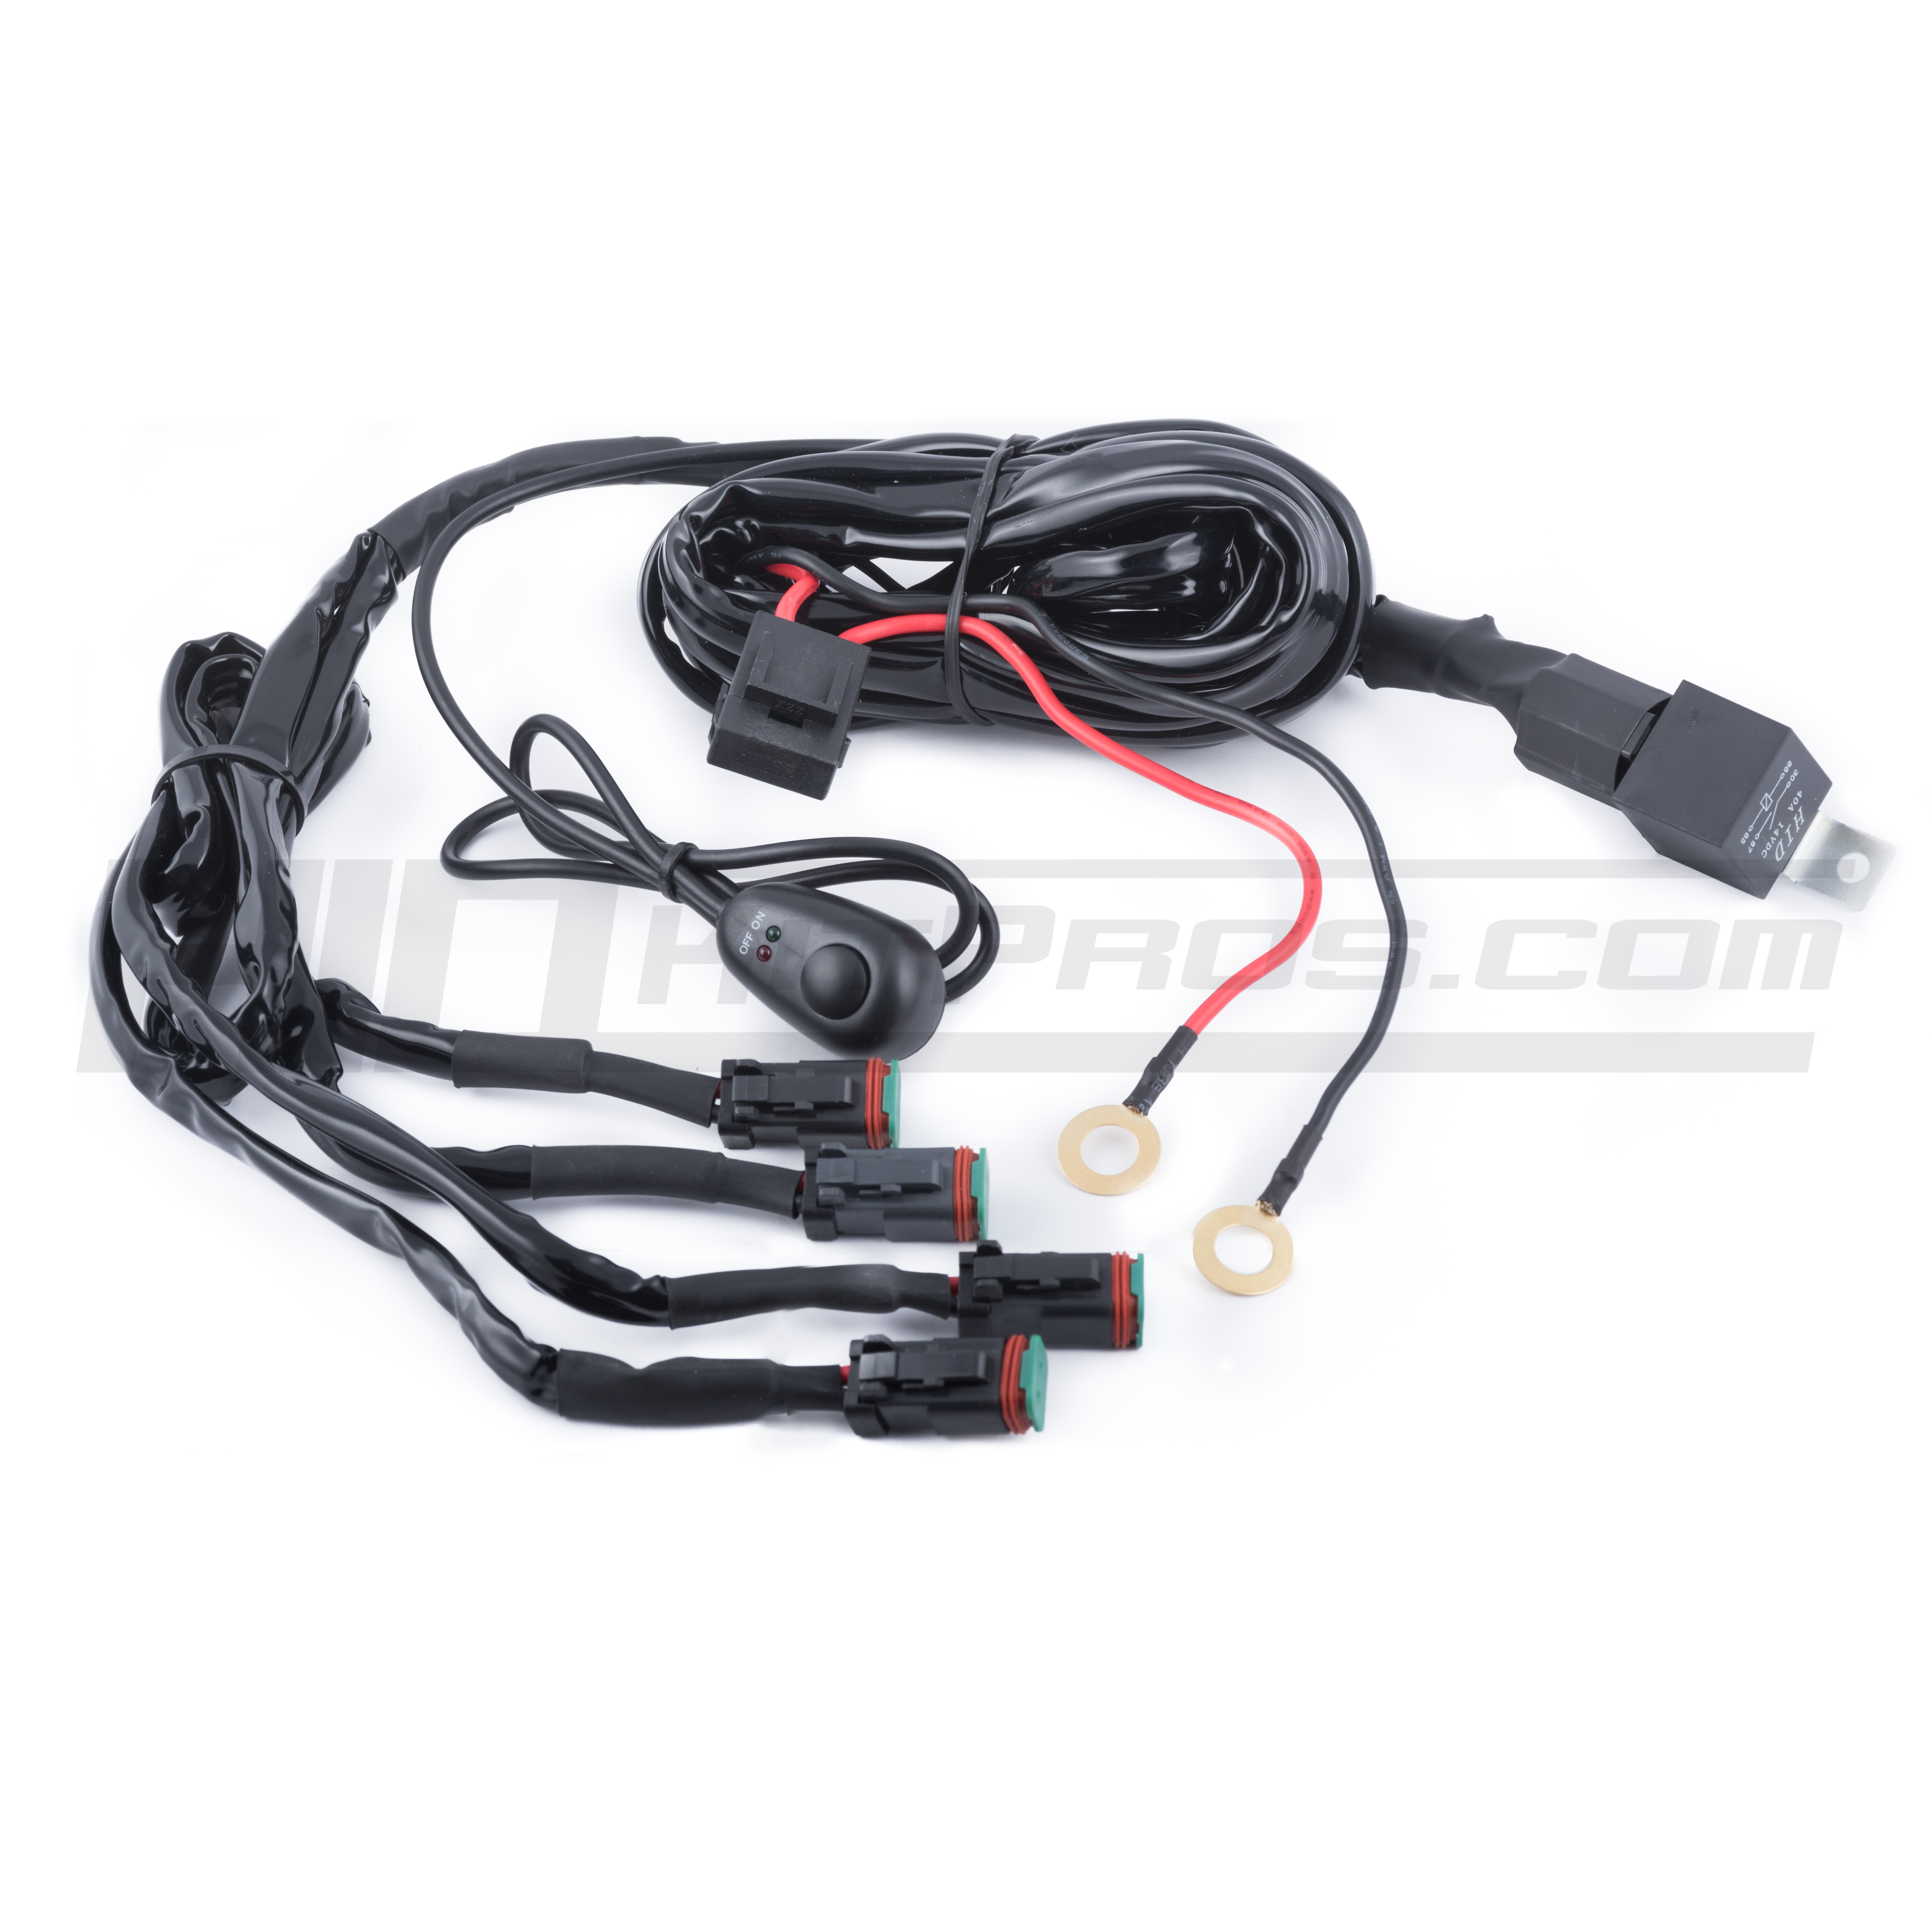 TOTRON Quad Output Wiring Harness | HID Kit Pros on universal fuse box, universal fuel rail, construction harness, universal steering column, universal miller by sperian harness, universal radio harness, universal air filter, universal battery, universal ignition module, lightweight safety harness, universal heater core, stihl universal harness, universal equipment harness,